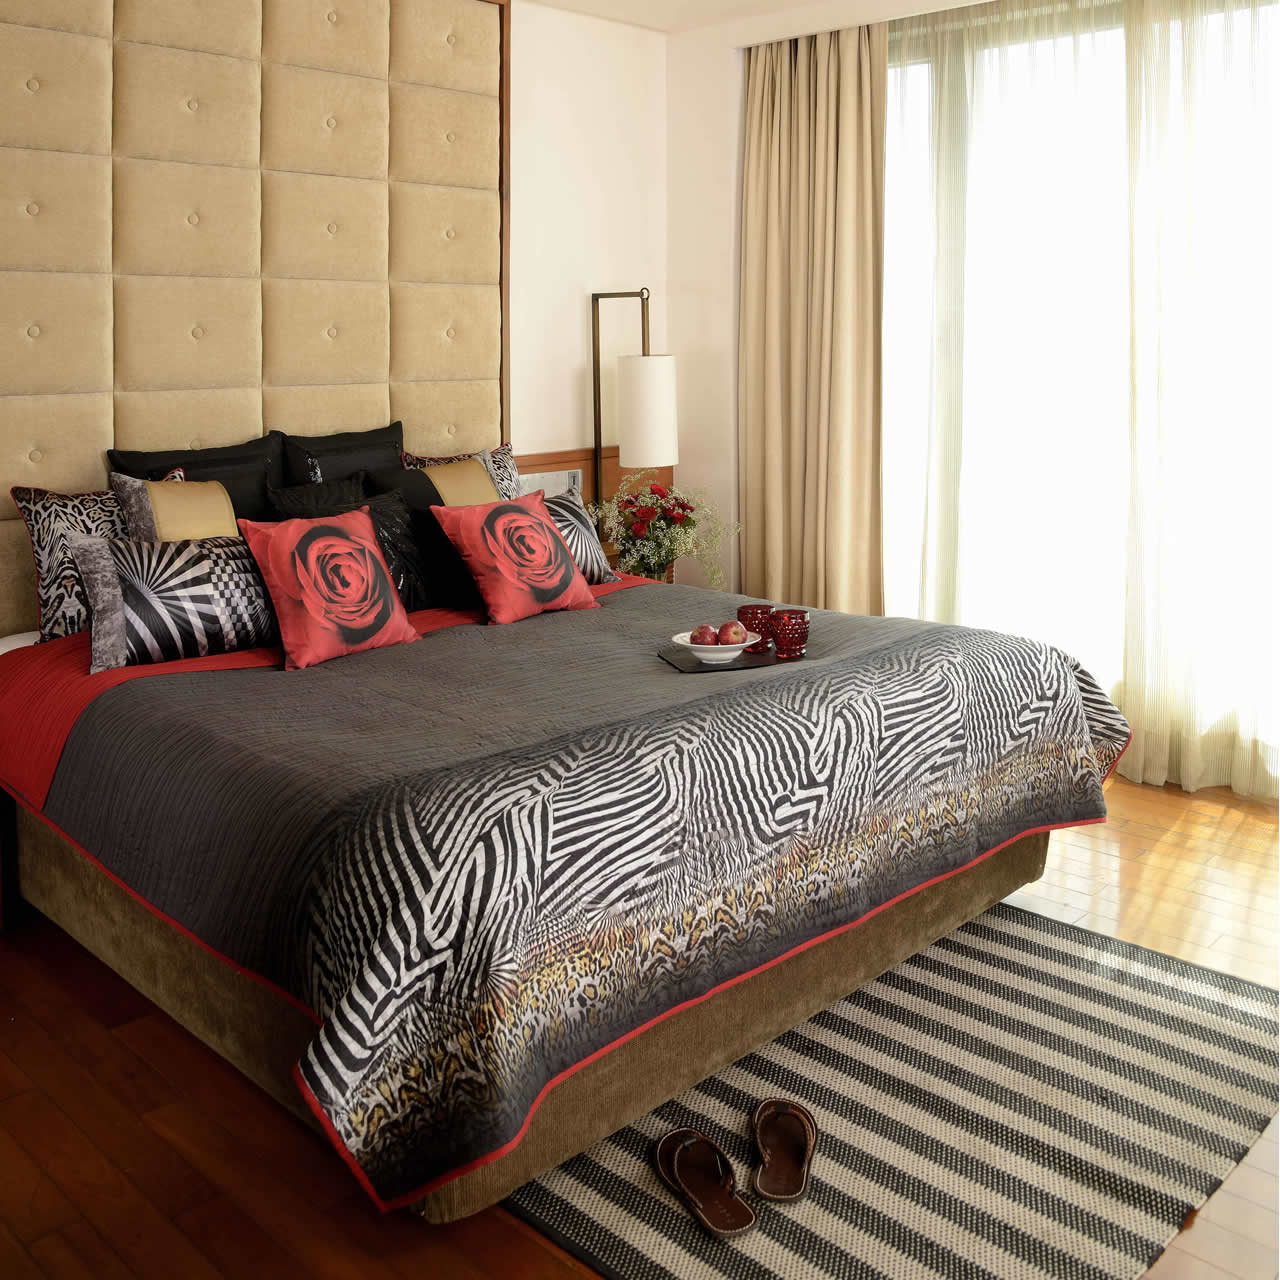 Satya Paul Launches Its First Ever Home Decor Line